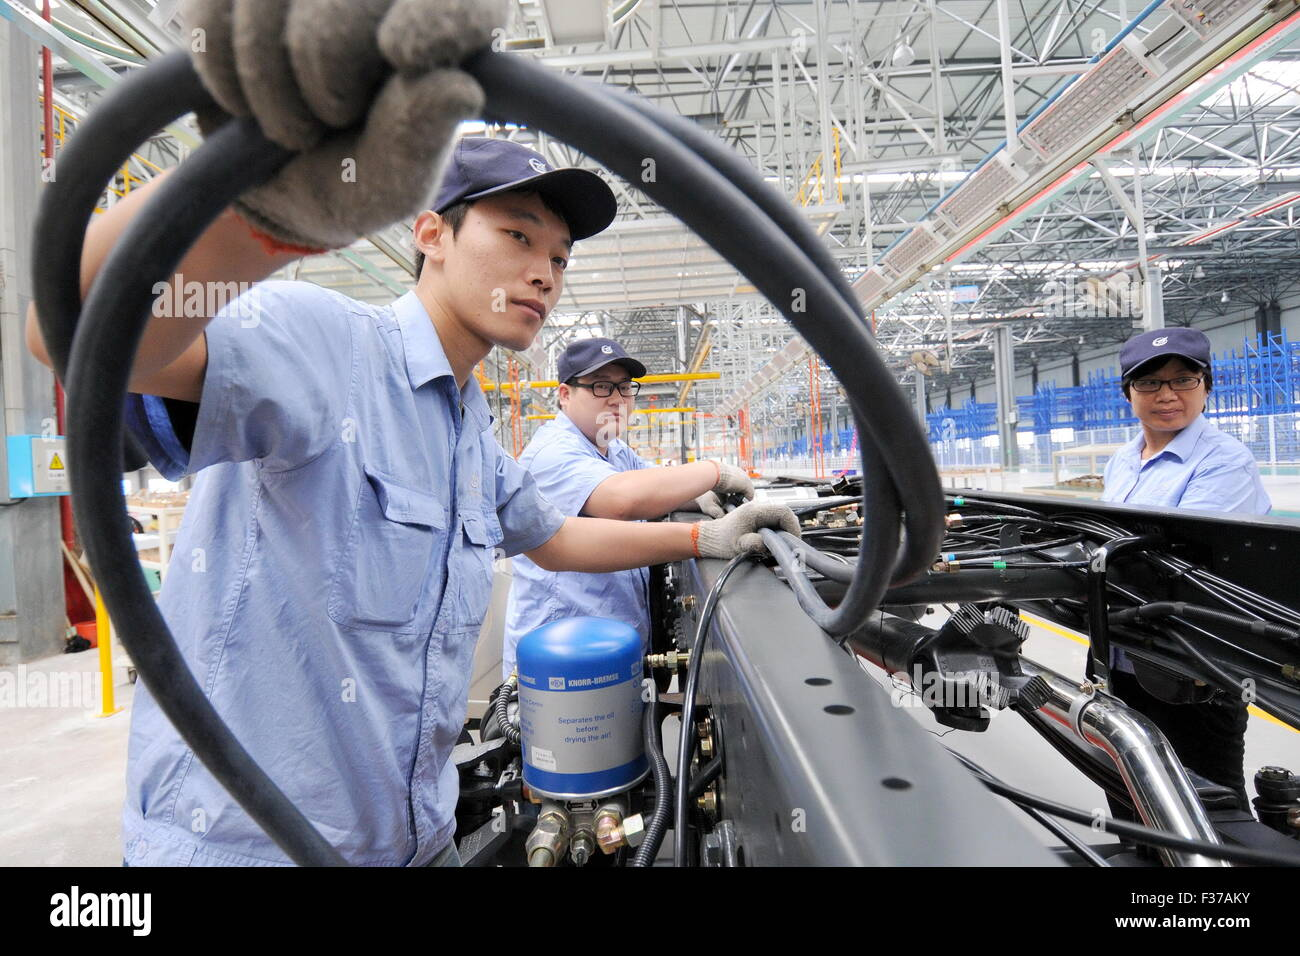 (151001) -- XINGTAI, Oct. 1, 2015 (Xinhua) -- Workers work on a production line at a production base of Aviation - Stock Image